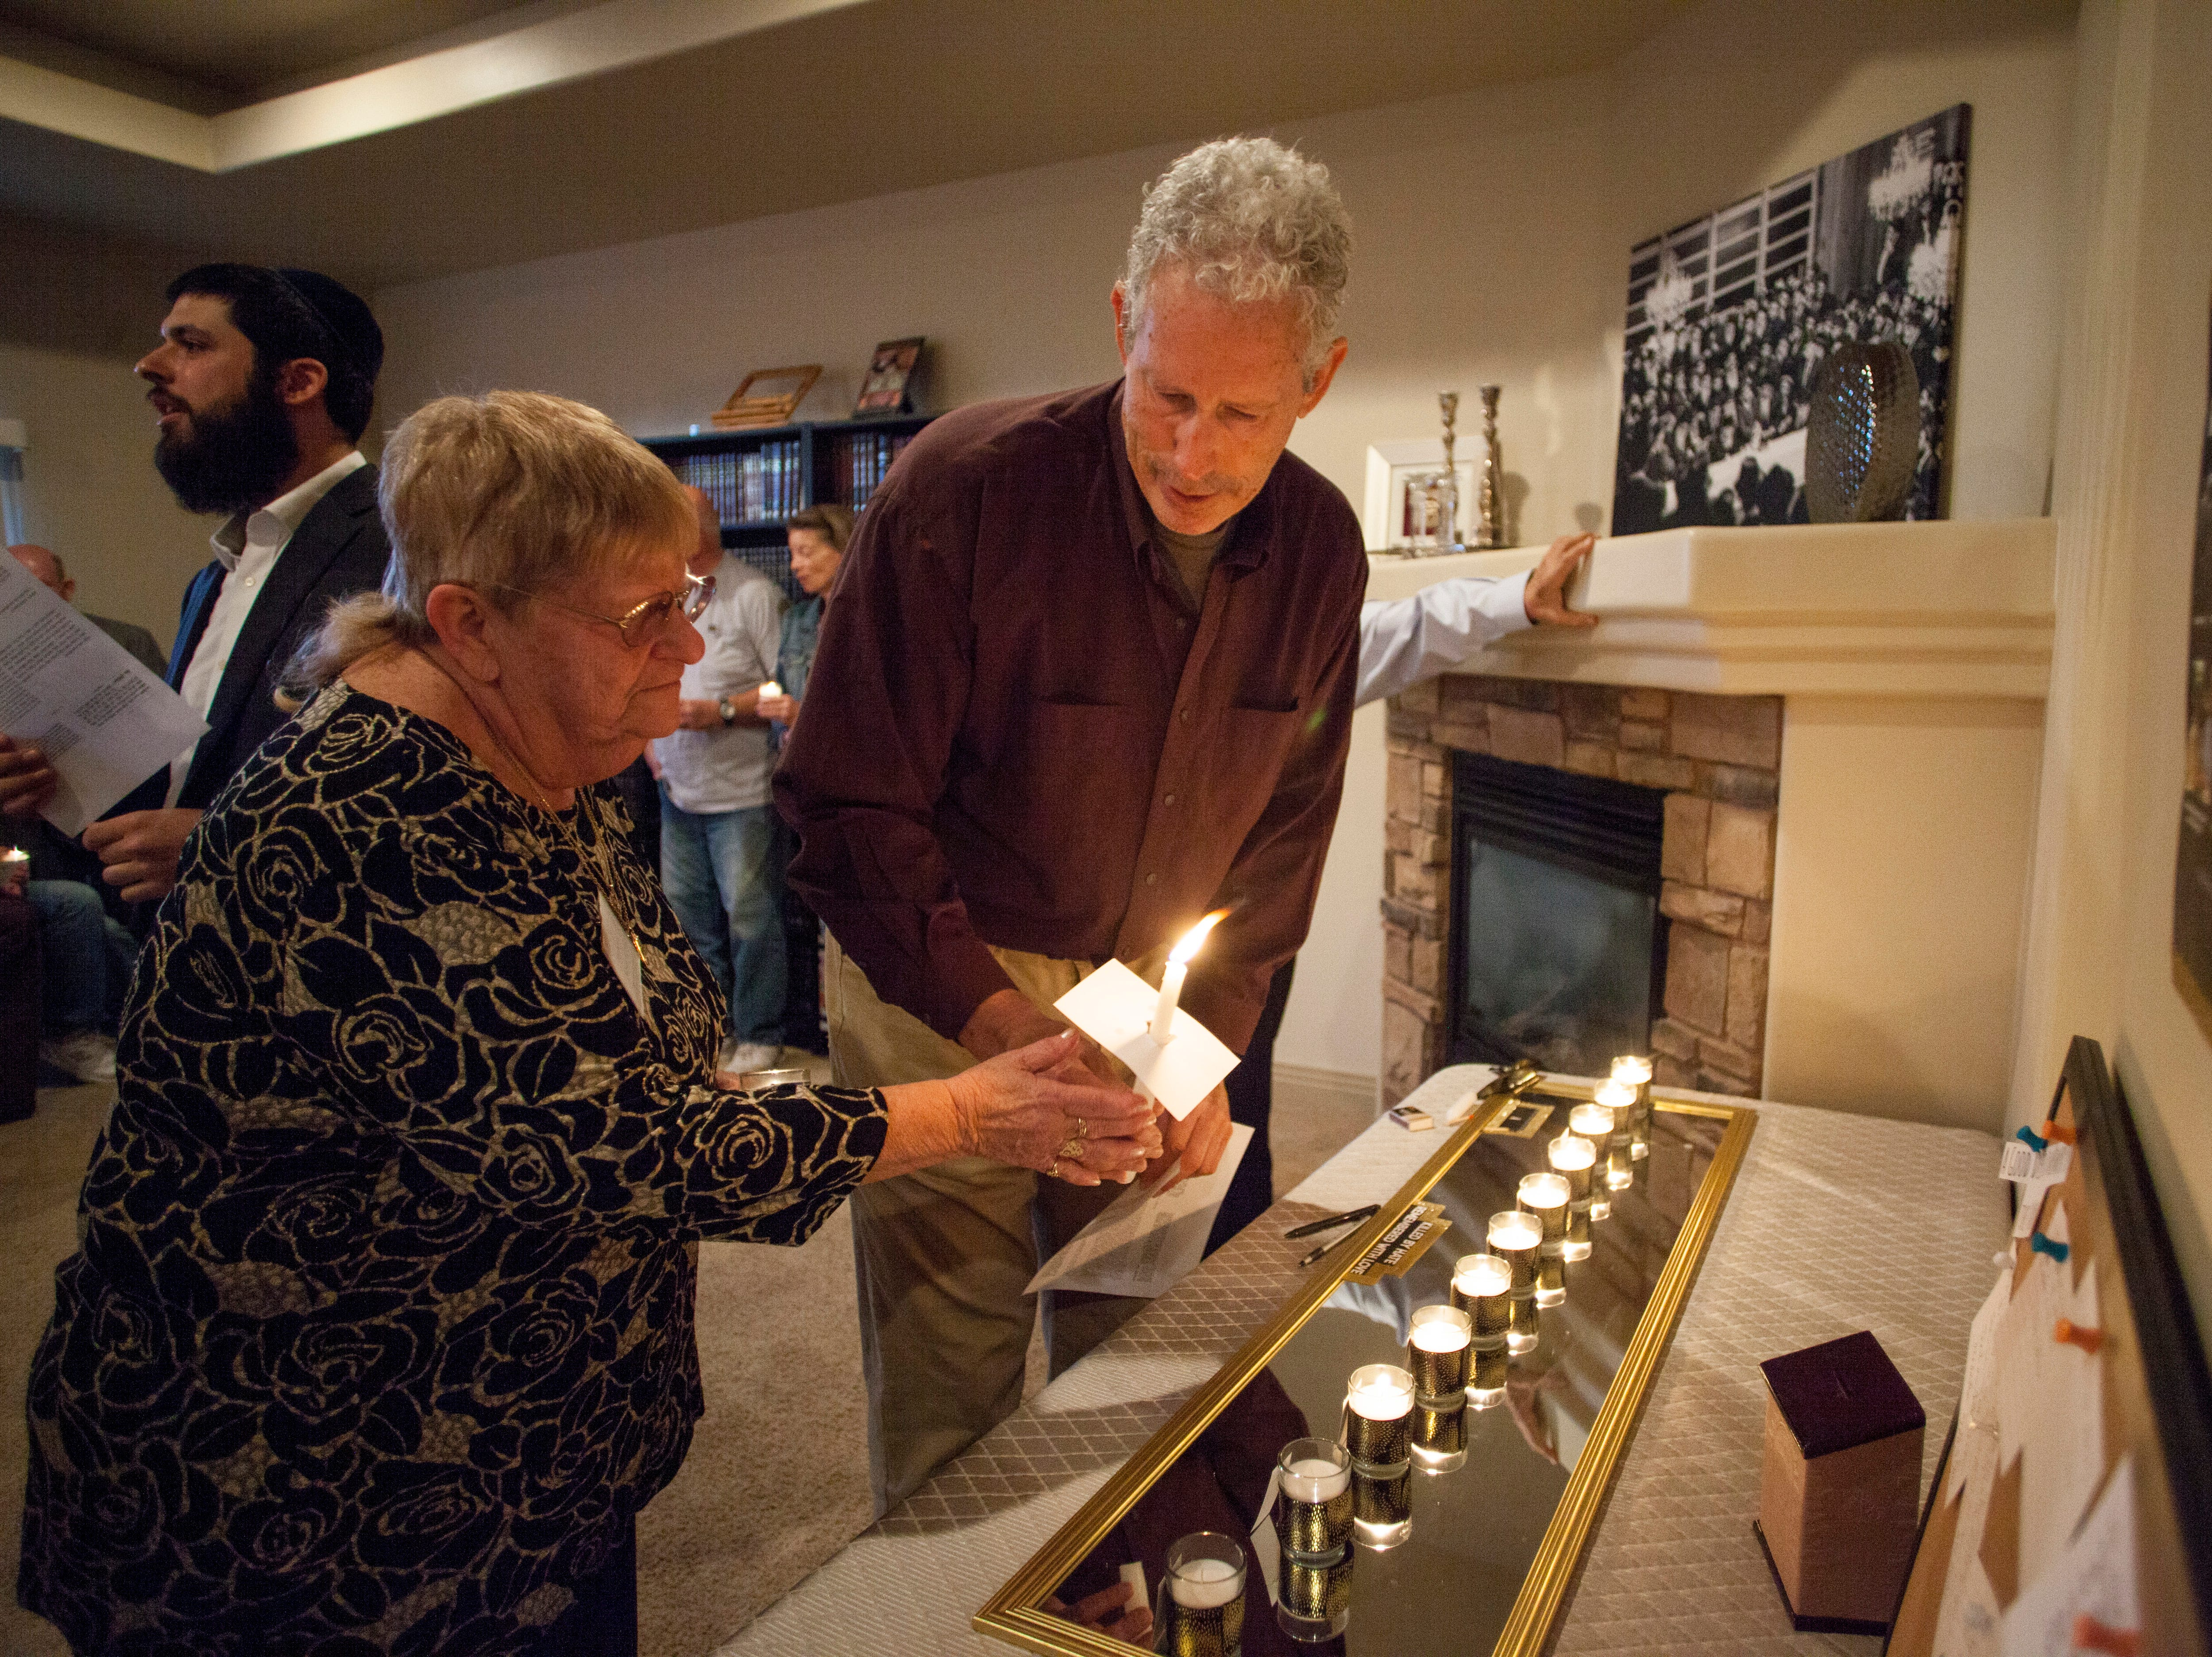 Washington County residents from various faiths gather for a candlelight vigil in honor of the Pittsburgh shooting victims Tuesday, Oct. 30, 2018.